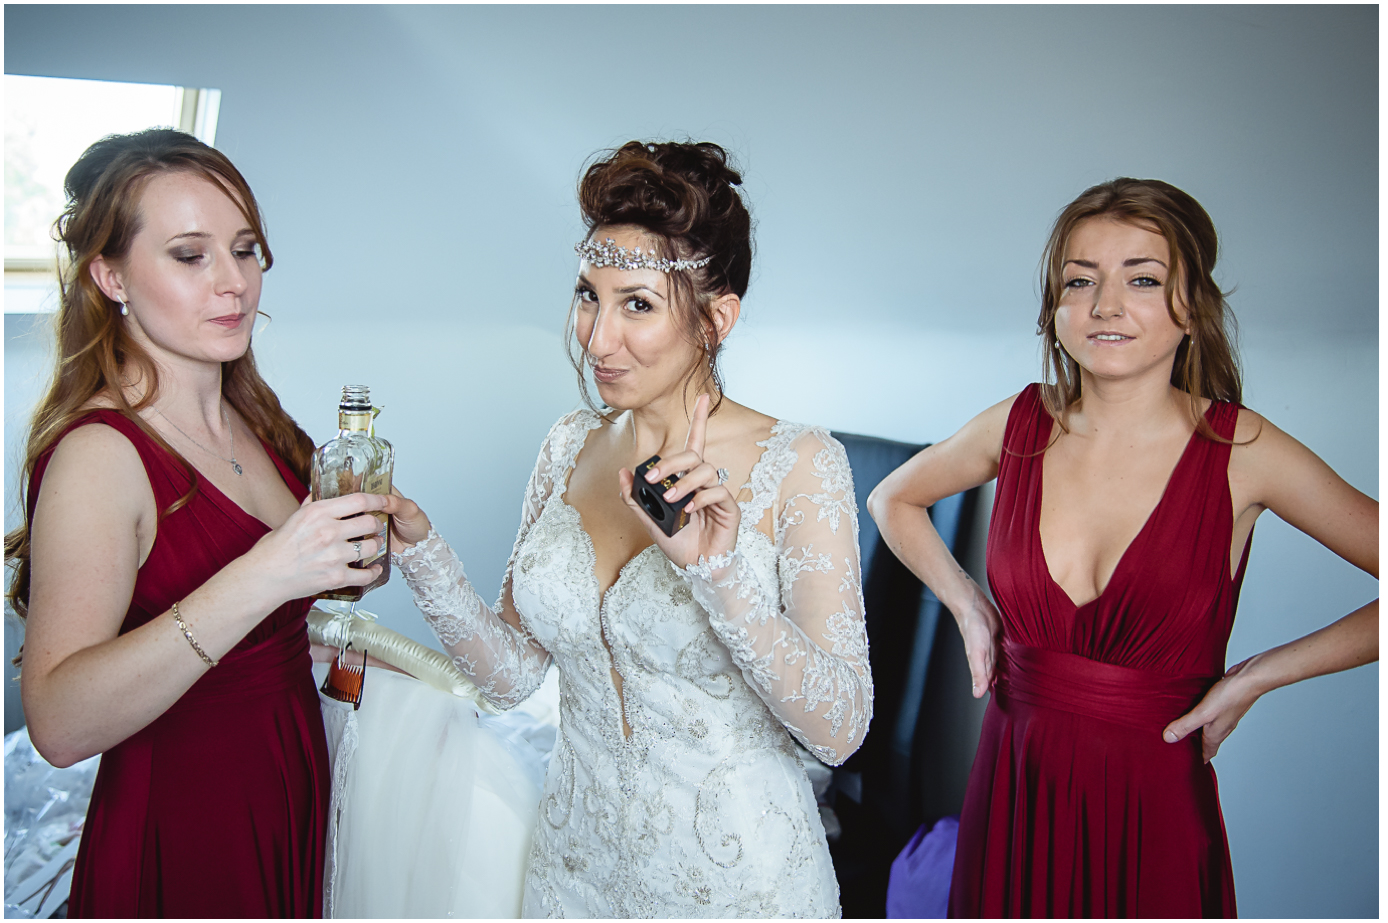 iranian wedding photographer 30 - Drapers Hall London Wedding Photographer